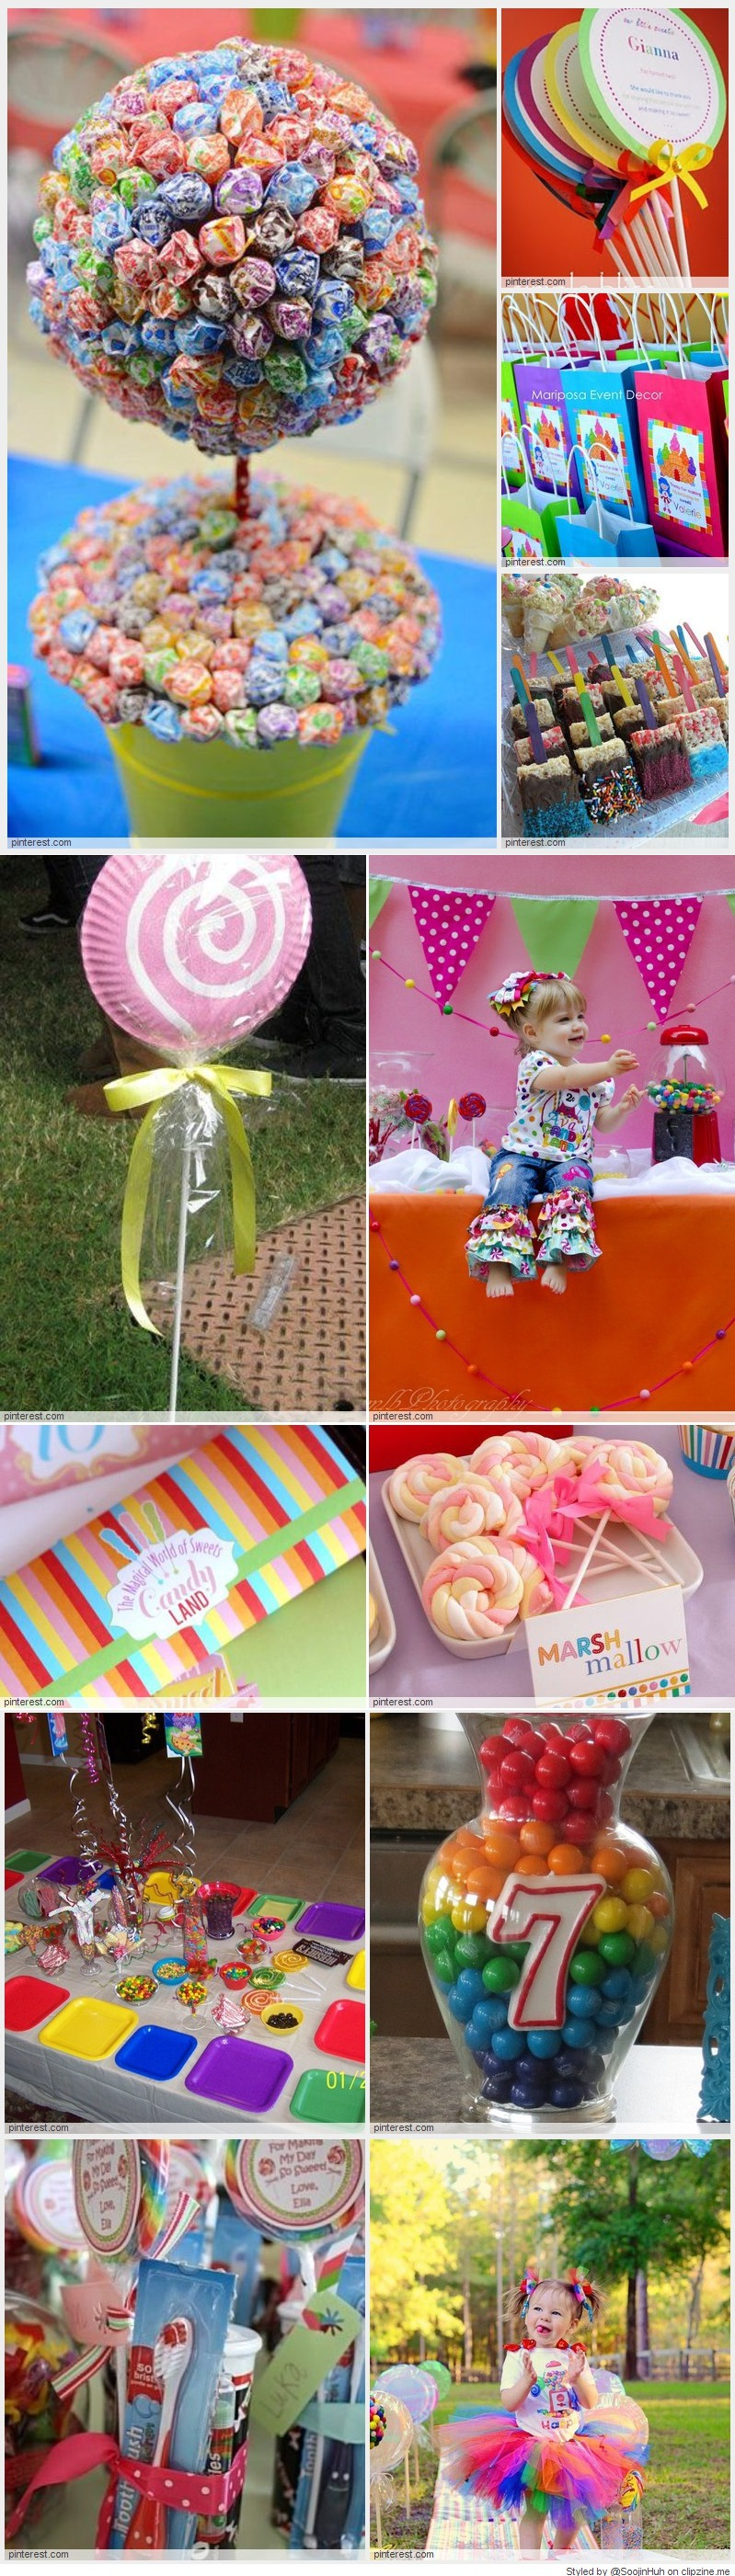 Candyland Party Ideas | Candyland Party Ideas | Pinterest